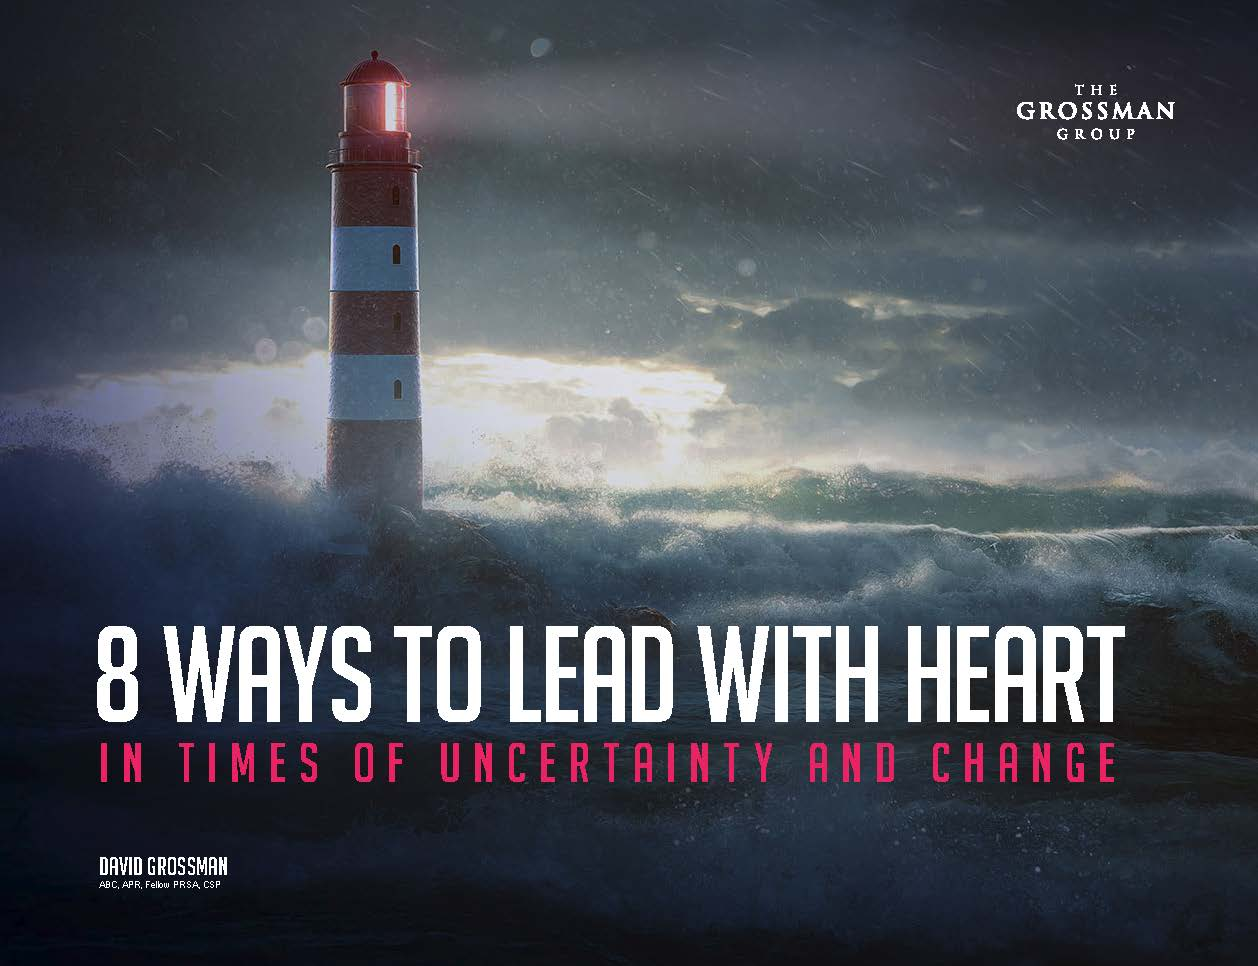 Free eBook: 8 Ways to Lead with Heart in Times of Uncertainty and Change